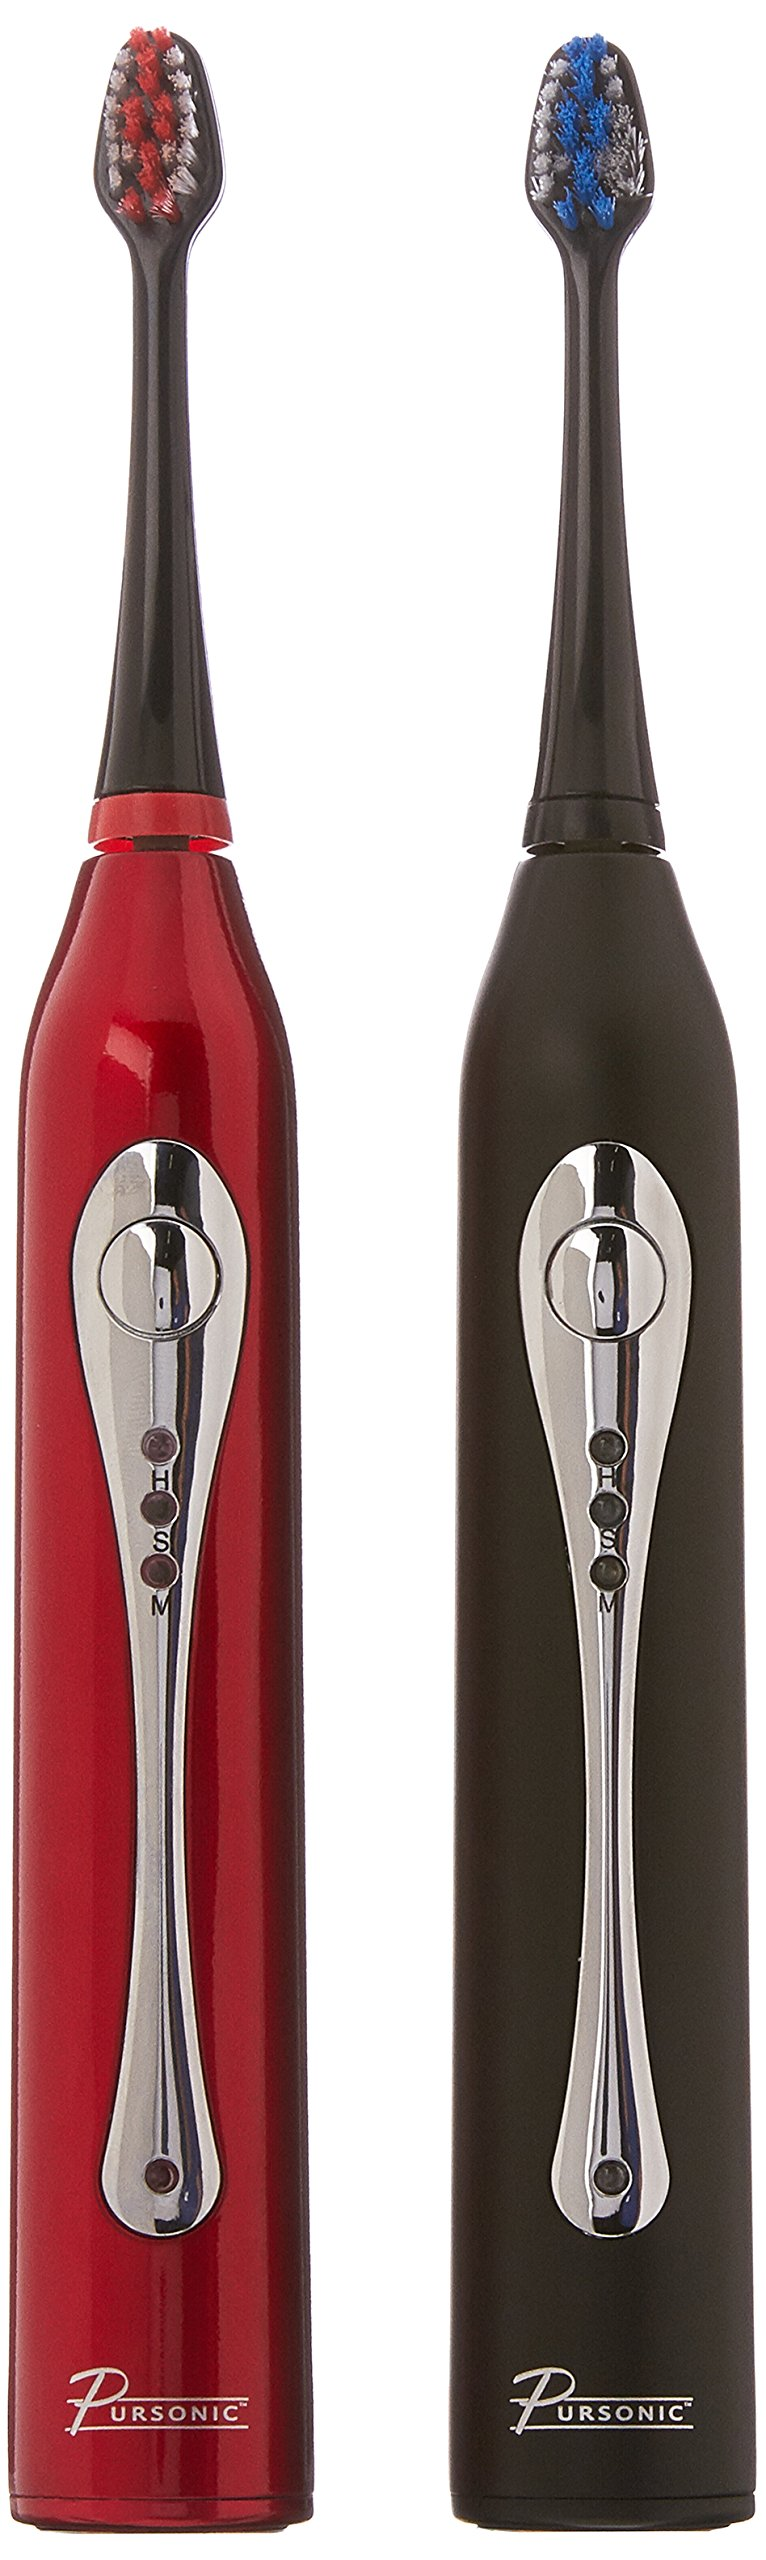 Pursonic S452BR Dual Handle Sonic Toothbrush with UV Sanitizer Black and Red